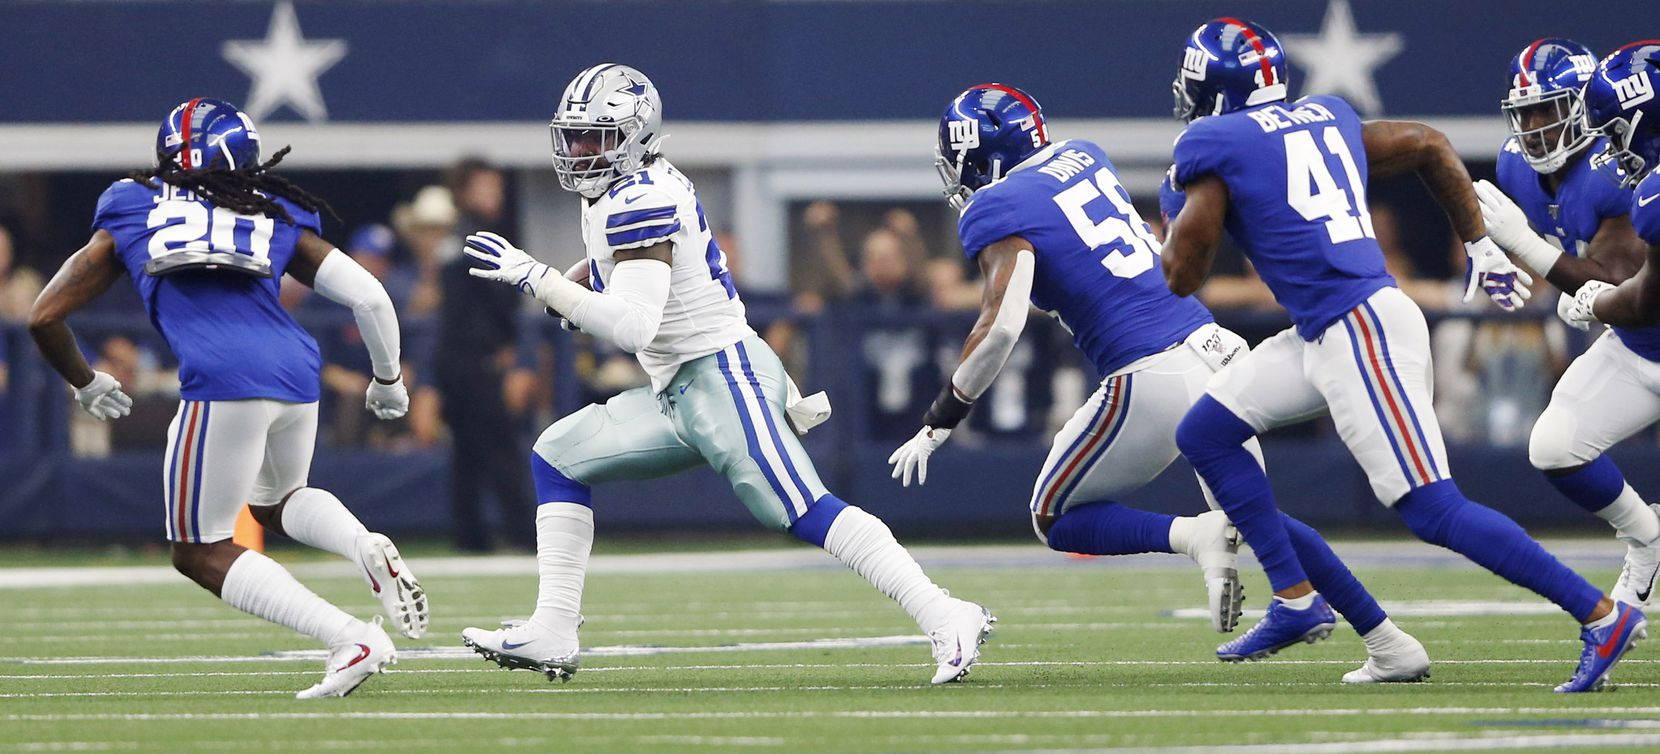 Dallas Cowboys running back Ezekiel Elliott (21) rushes up the field in the home opener between the Dallas Cowboys and New York Giants at AT&T Stadium in Arlington, Texas, on Sunday, September 8, 2019.